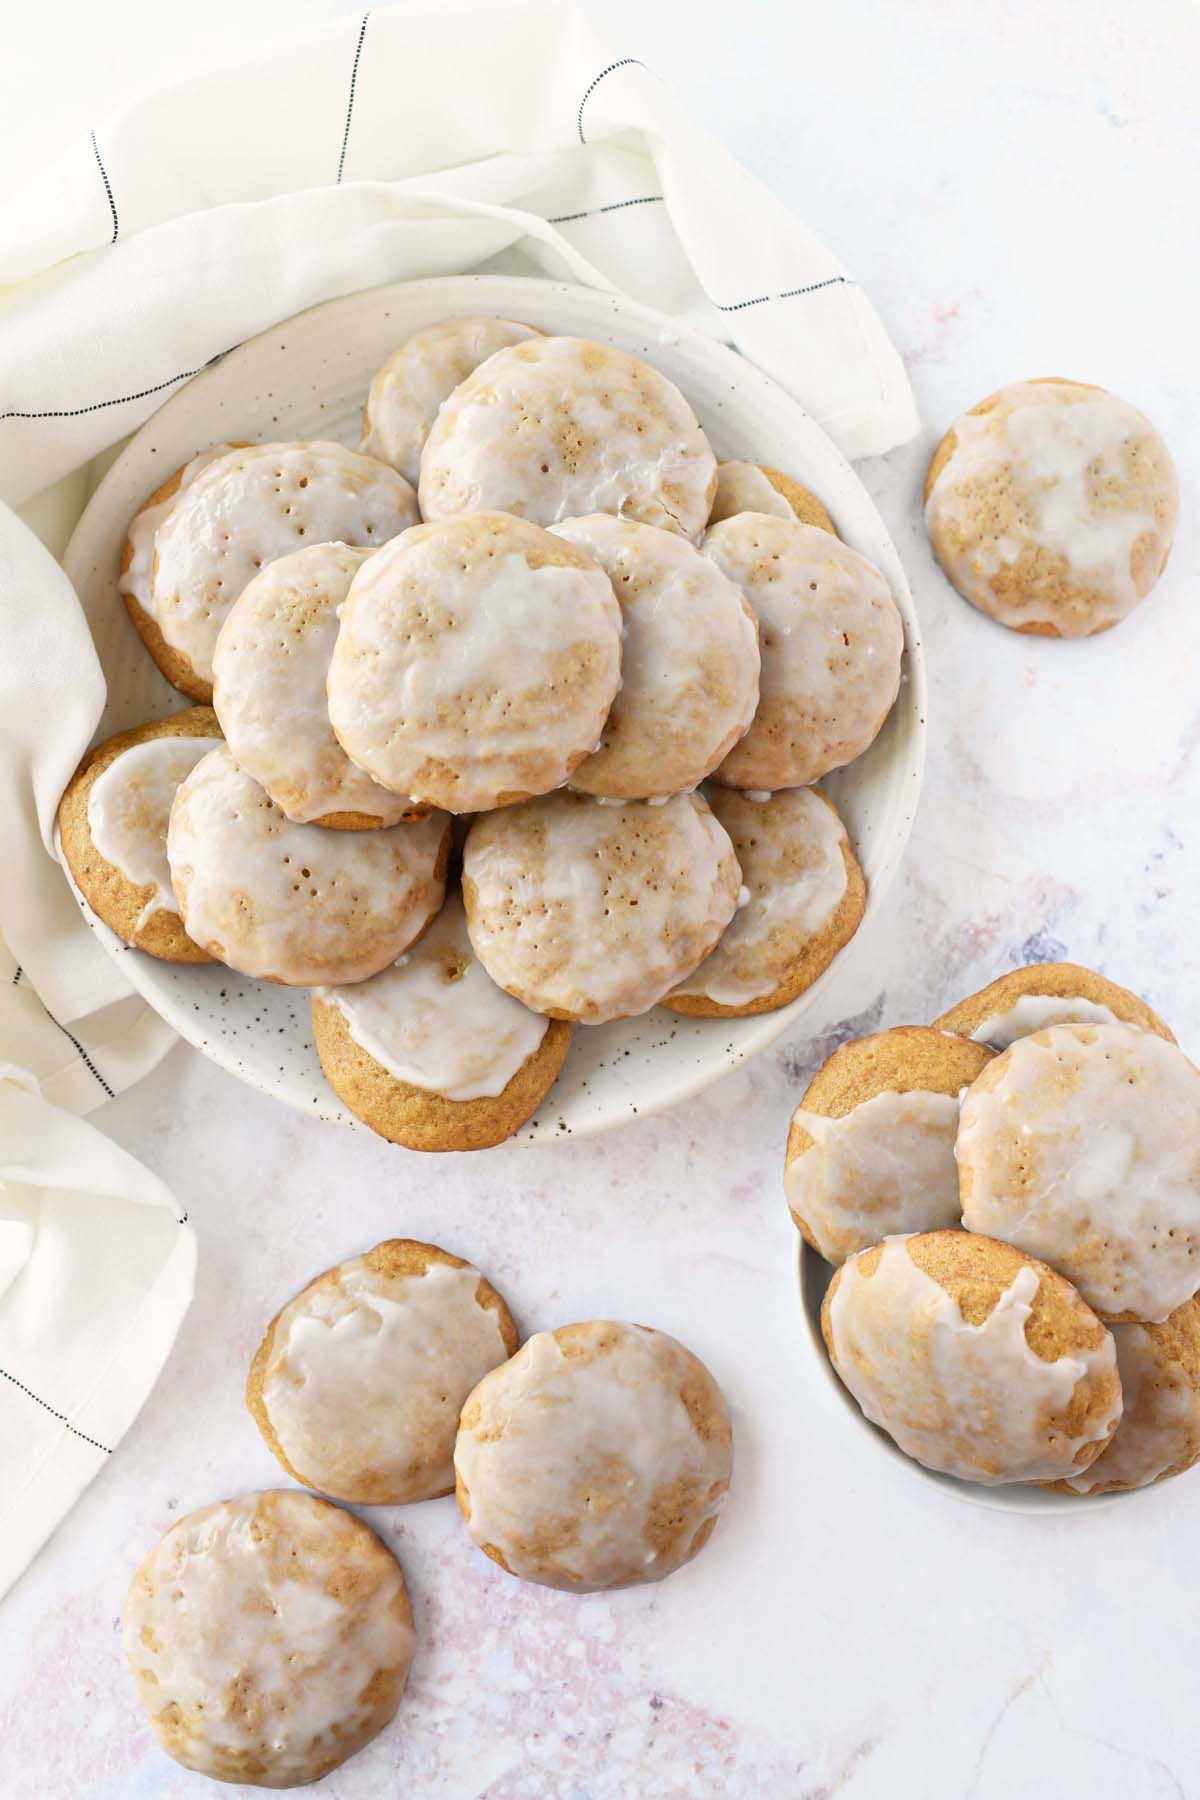 Iced pumpkin cookies on a white plate with a white napkin.